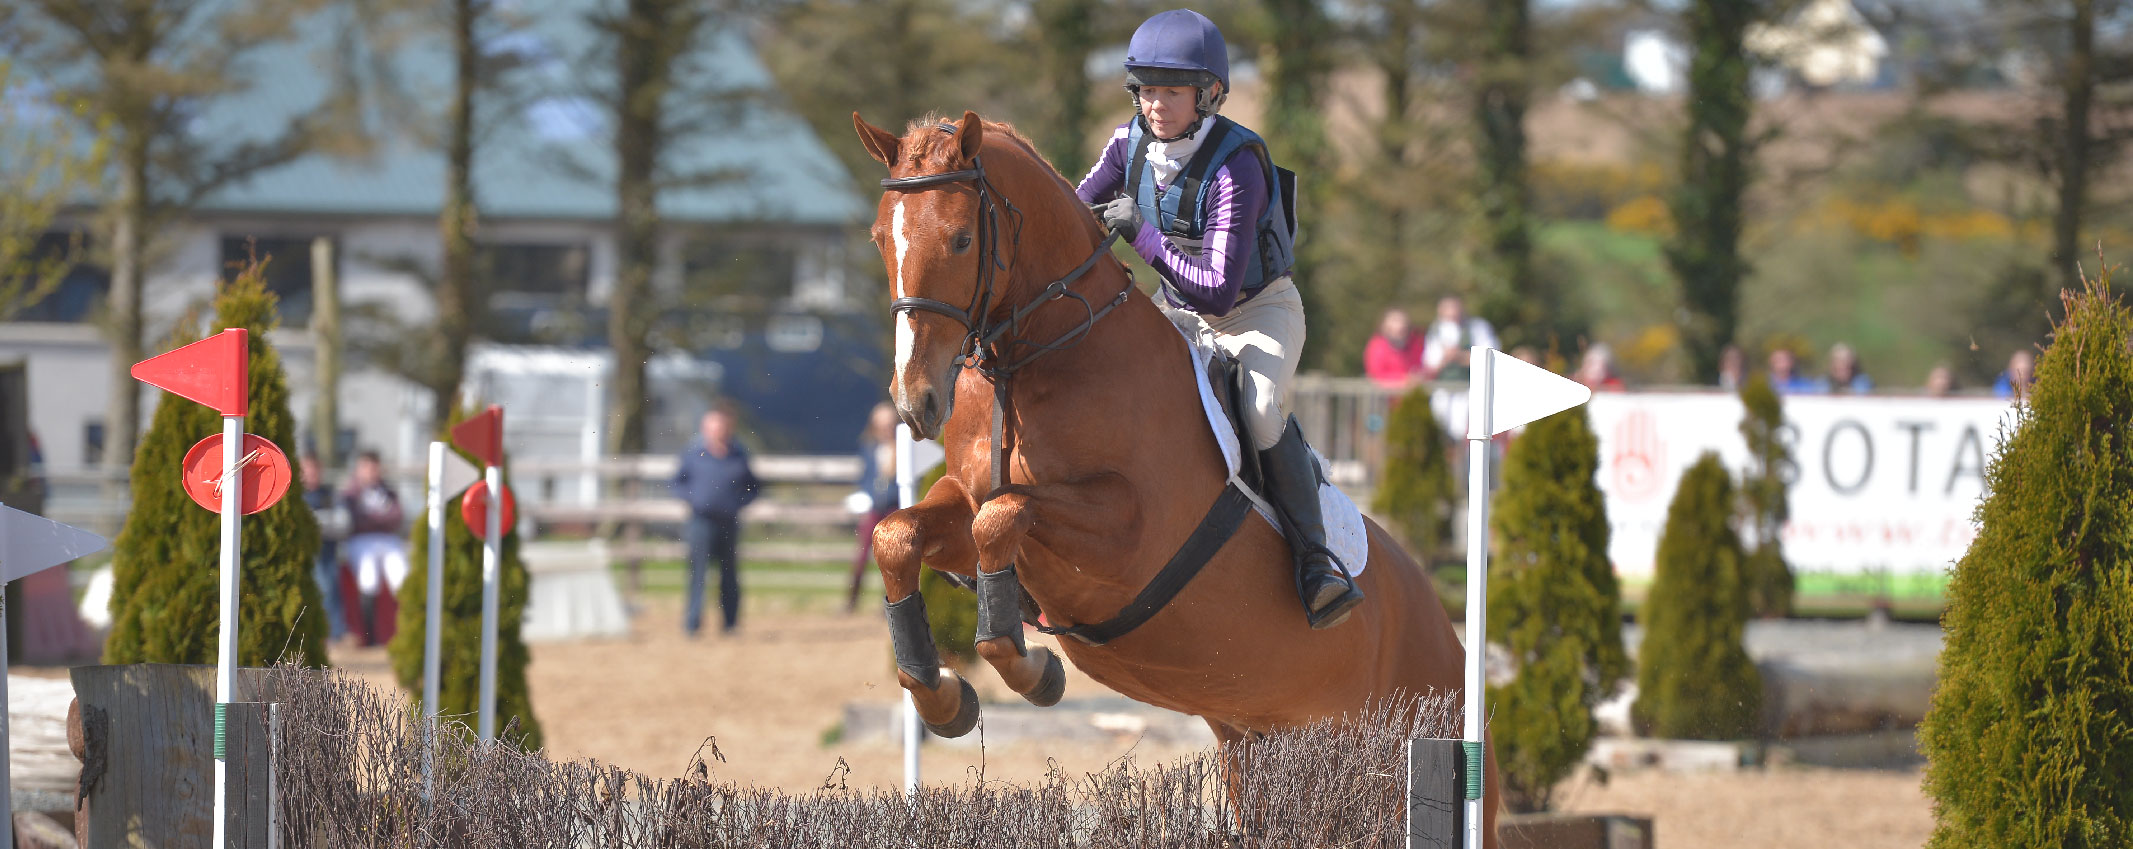 Wexford Equestrian - Stepping Stones (1)